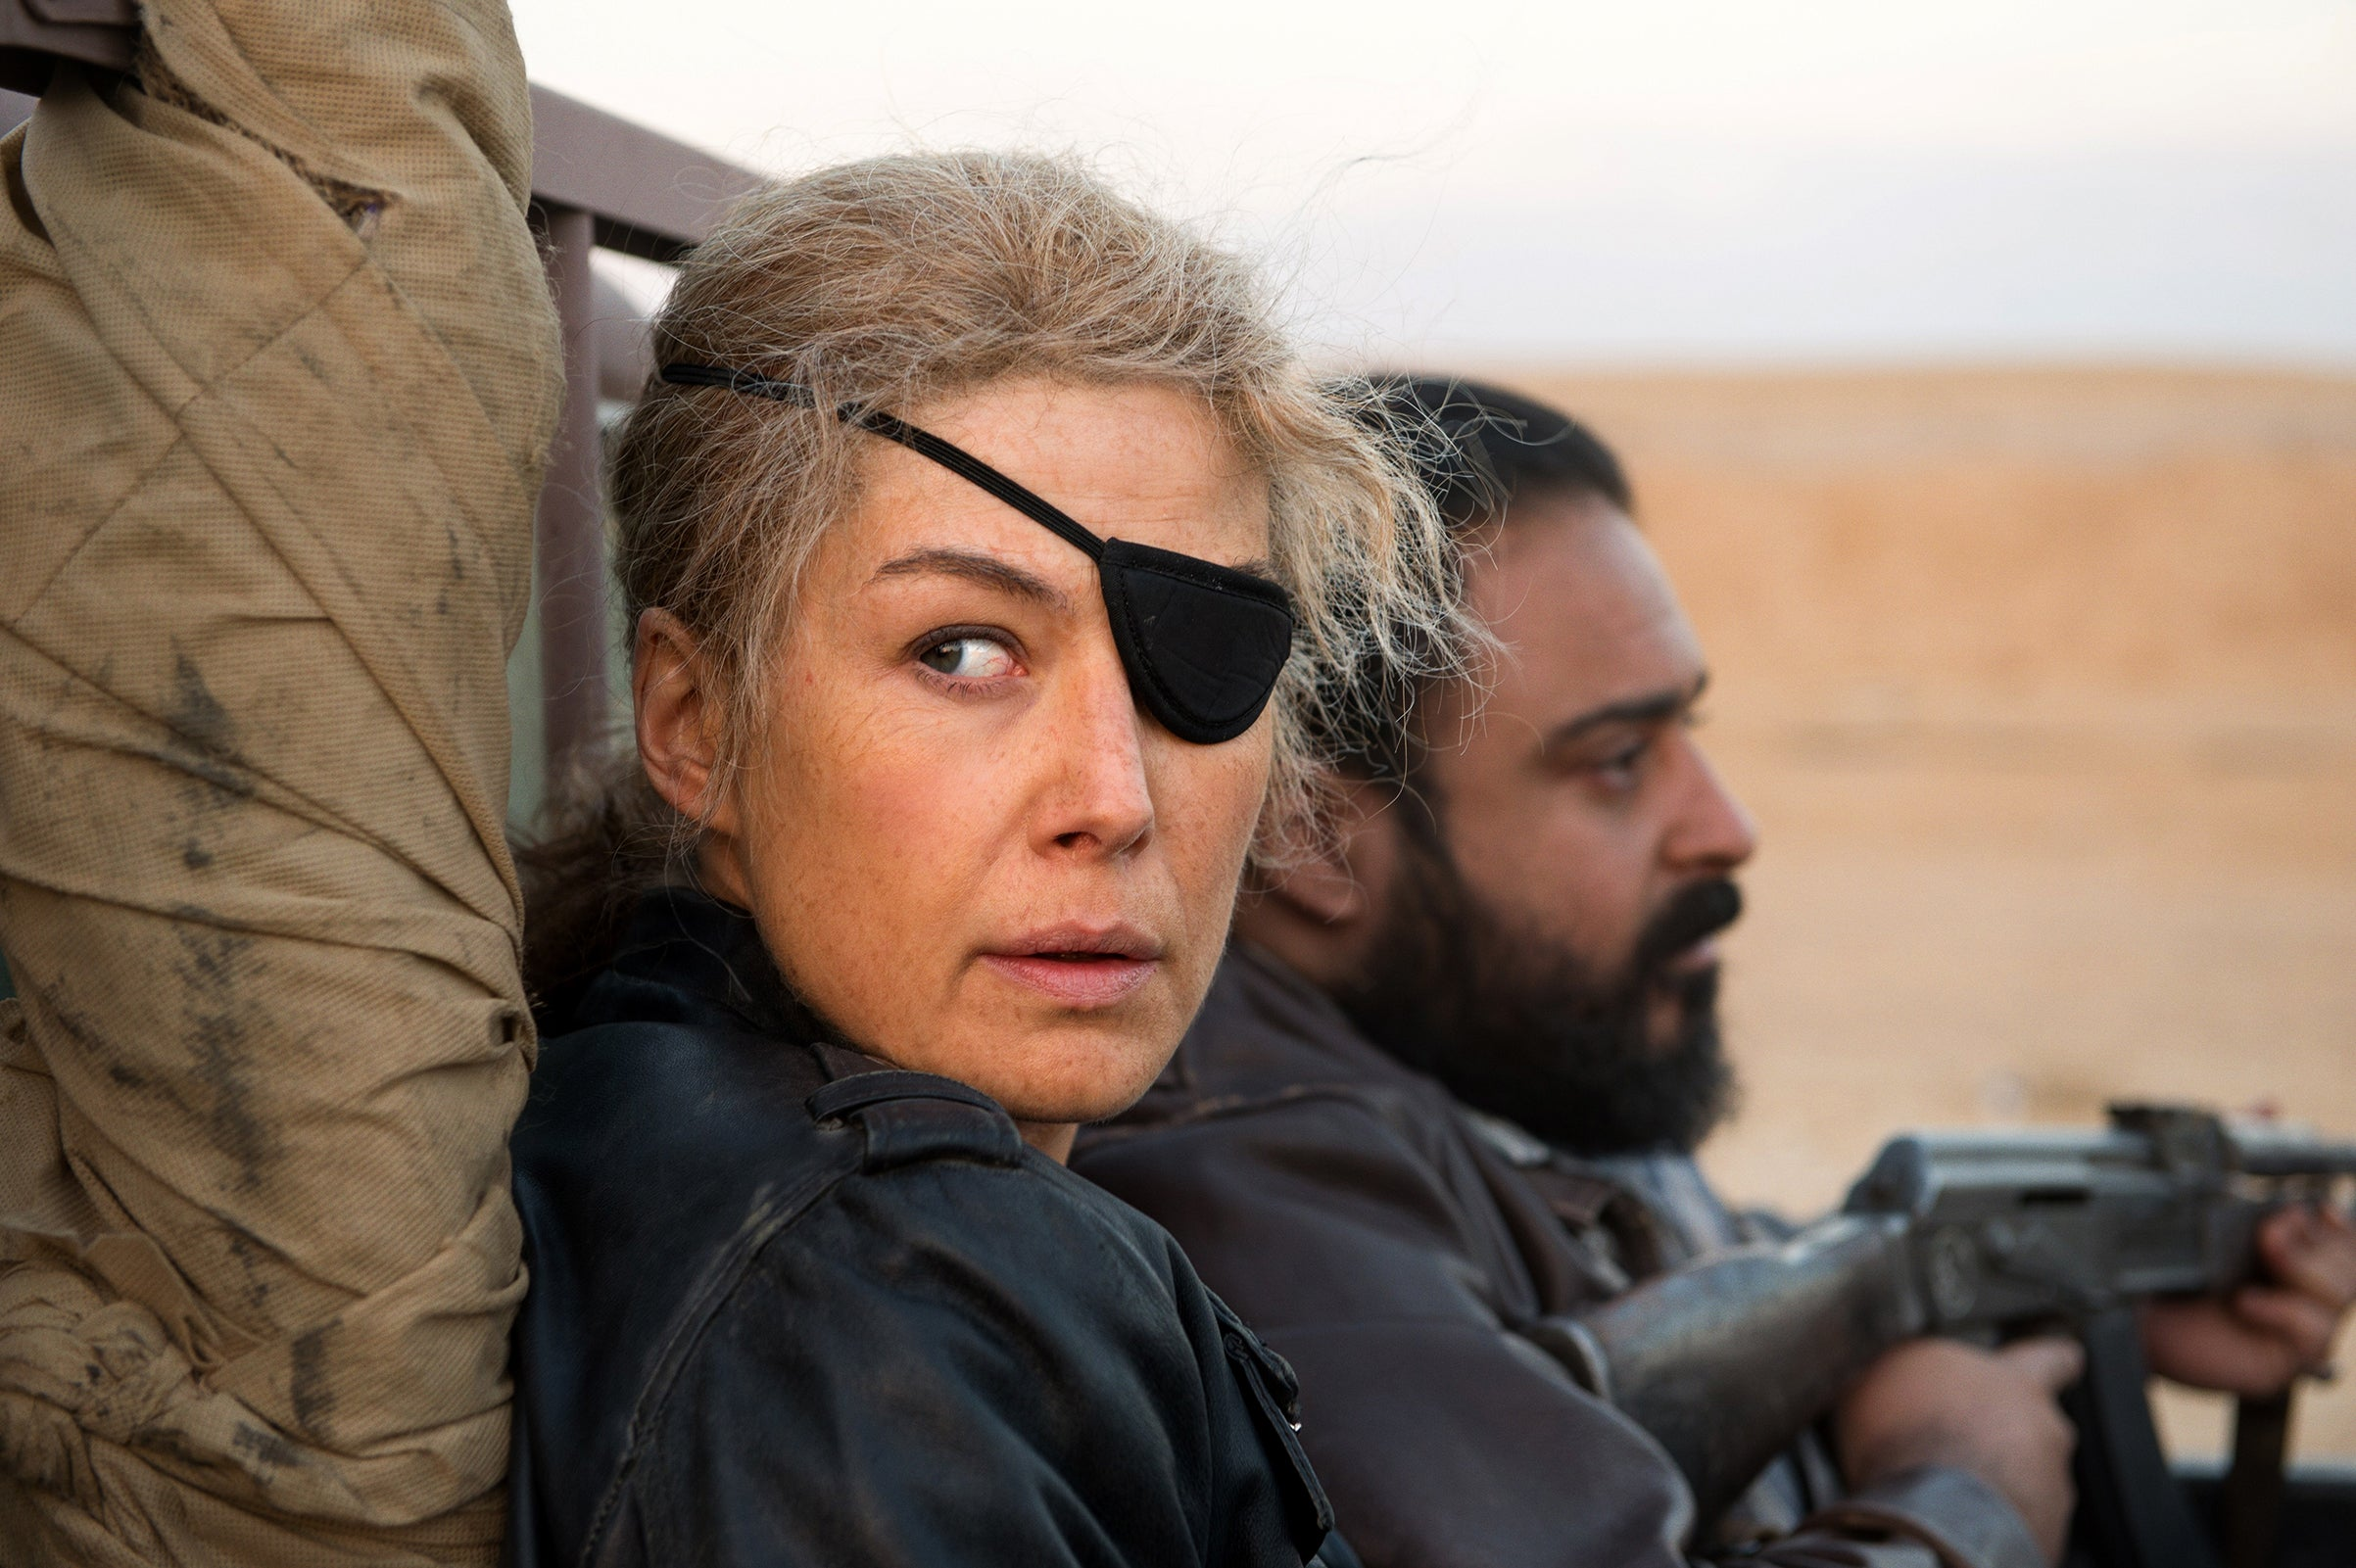 Rosamund Pike plays war correspondent Marie Colvin in A Private War